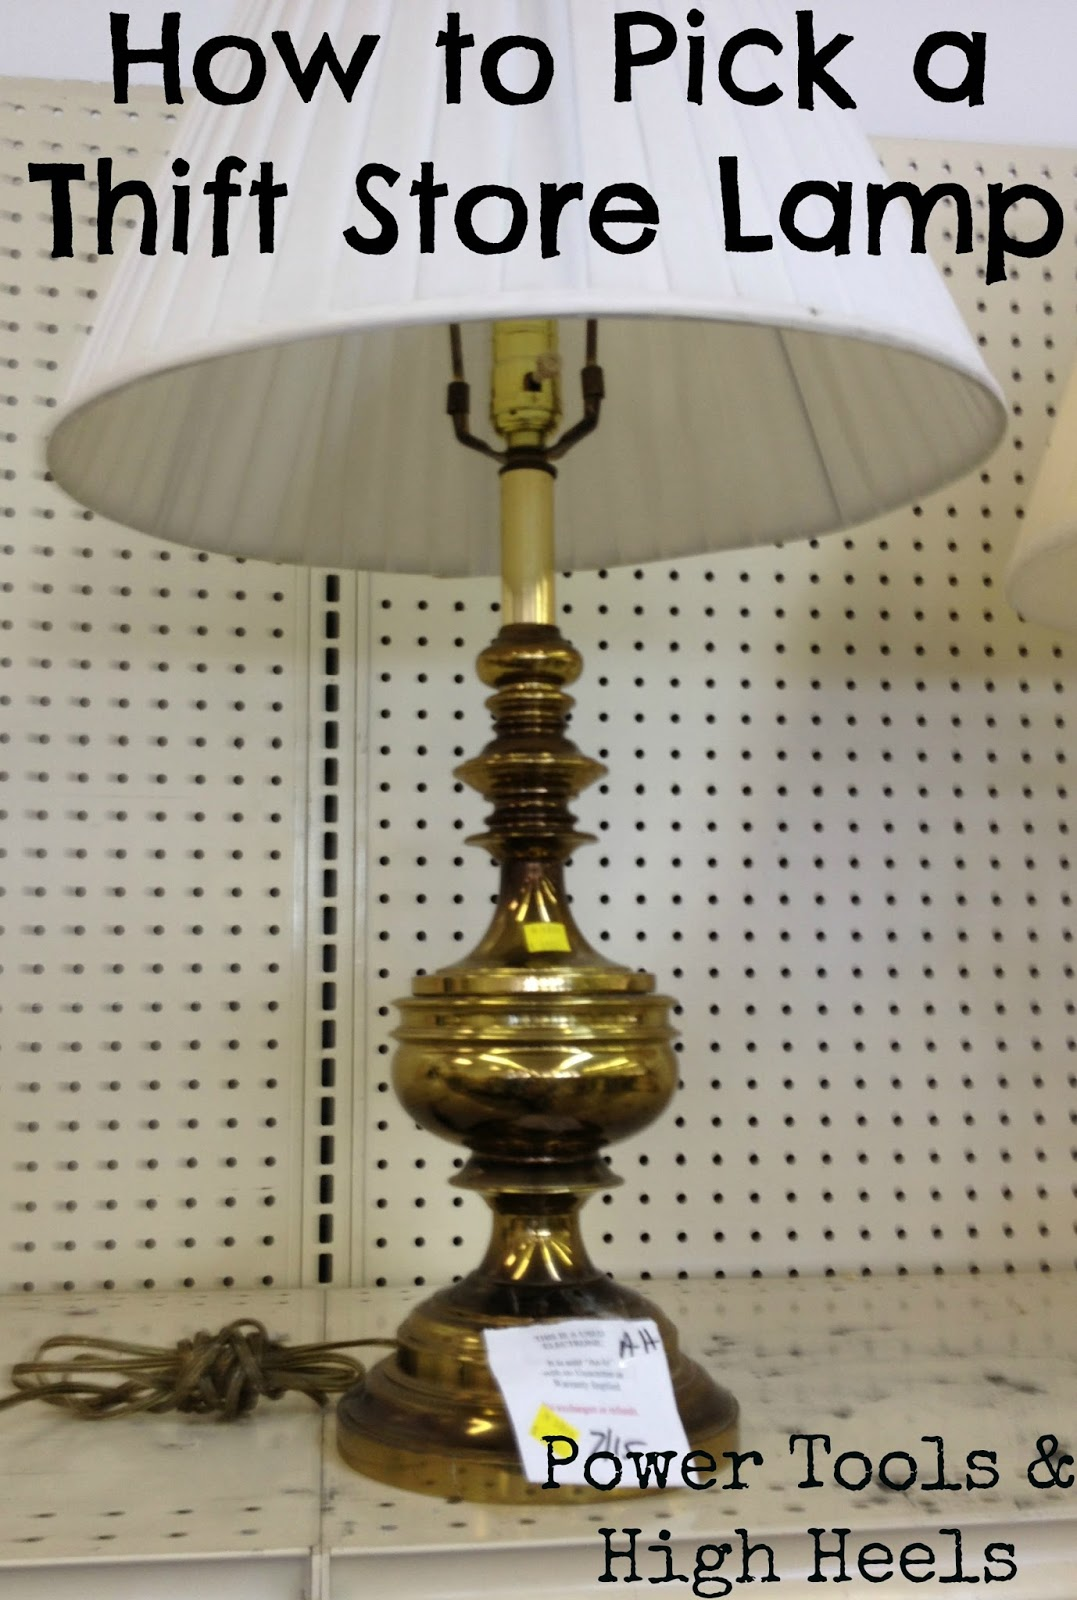 How To Pick A Thrift Store Lamp